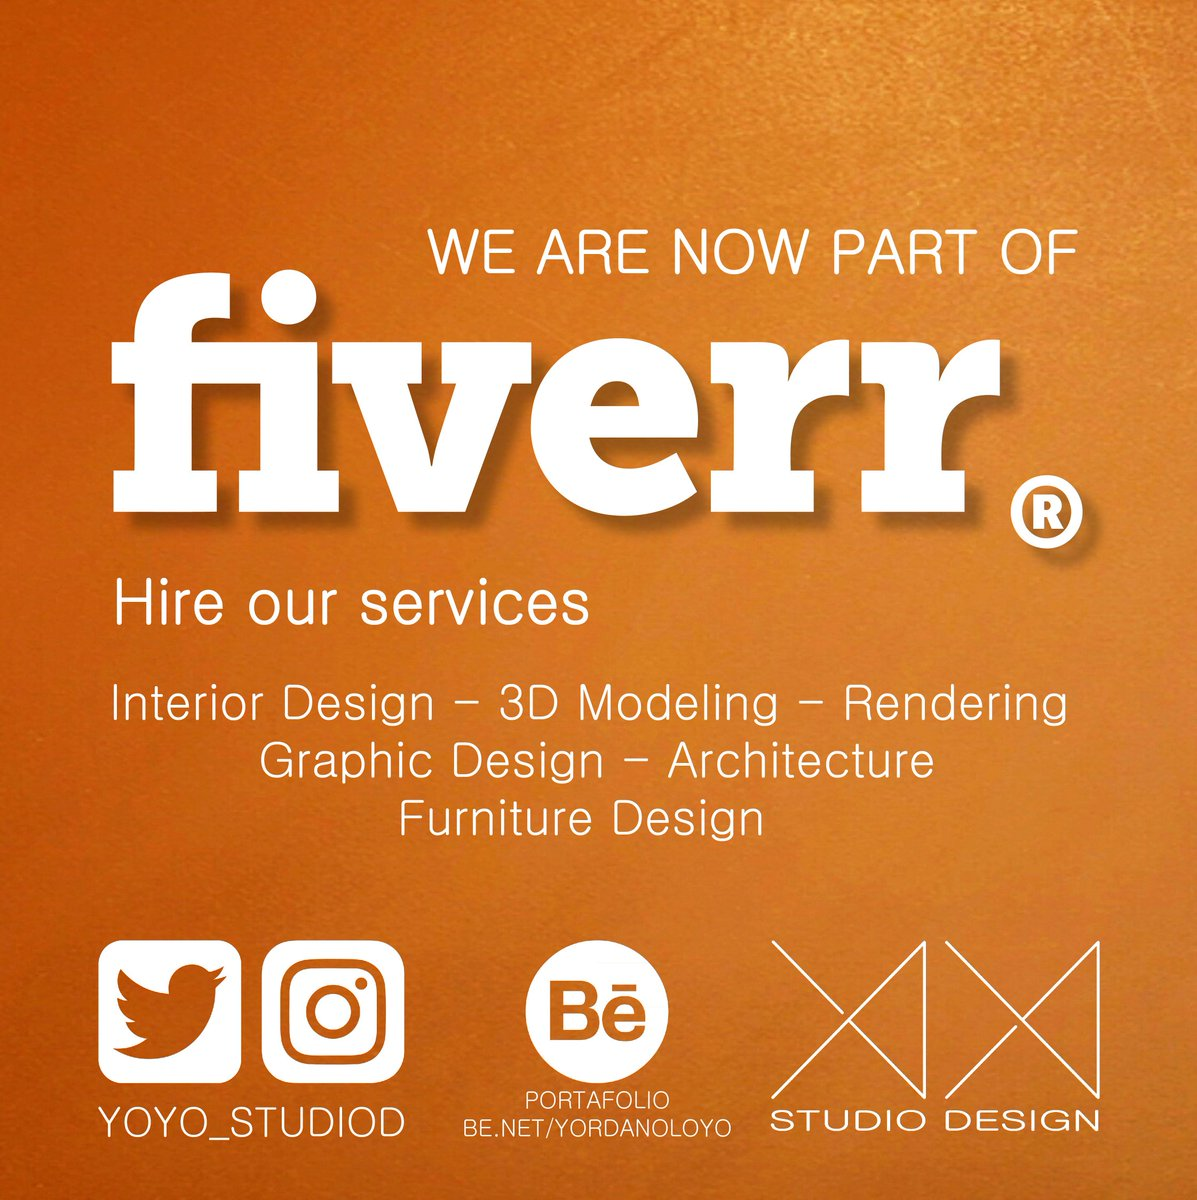 We are on @Fiverr Contact us!!! Let&#39;s work together  #3DModeling #Rendering #InteriorDesing #16Abr #GraphicDesign #FurnitureDesign #Design #Architecture #FelizLunes #MondayMotivation     https:// goo.gl/dYA65X  &nbsp;   <br>http://pic.twitter.com/f1OnFNDjI0